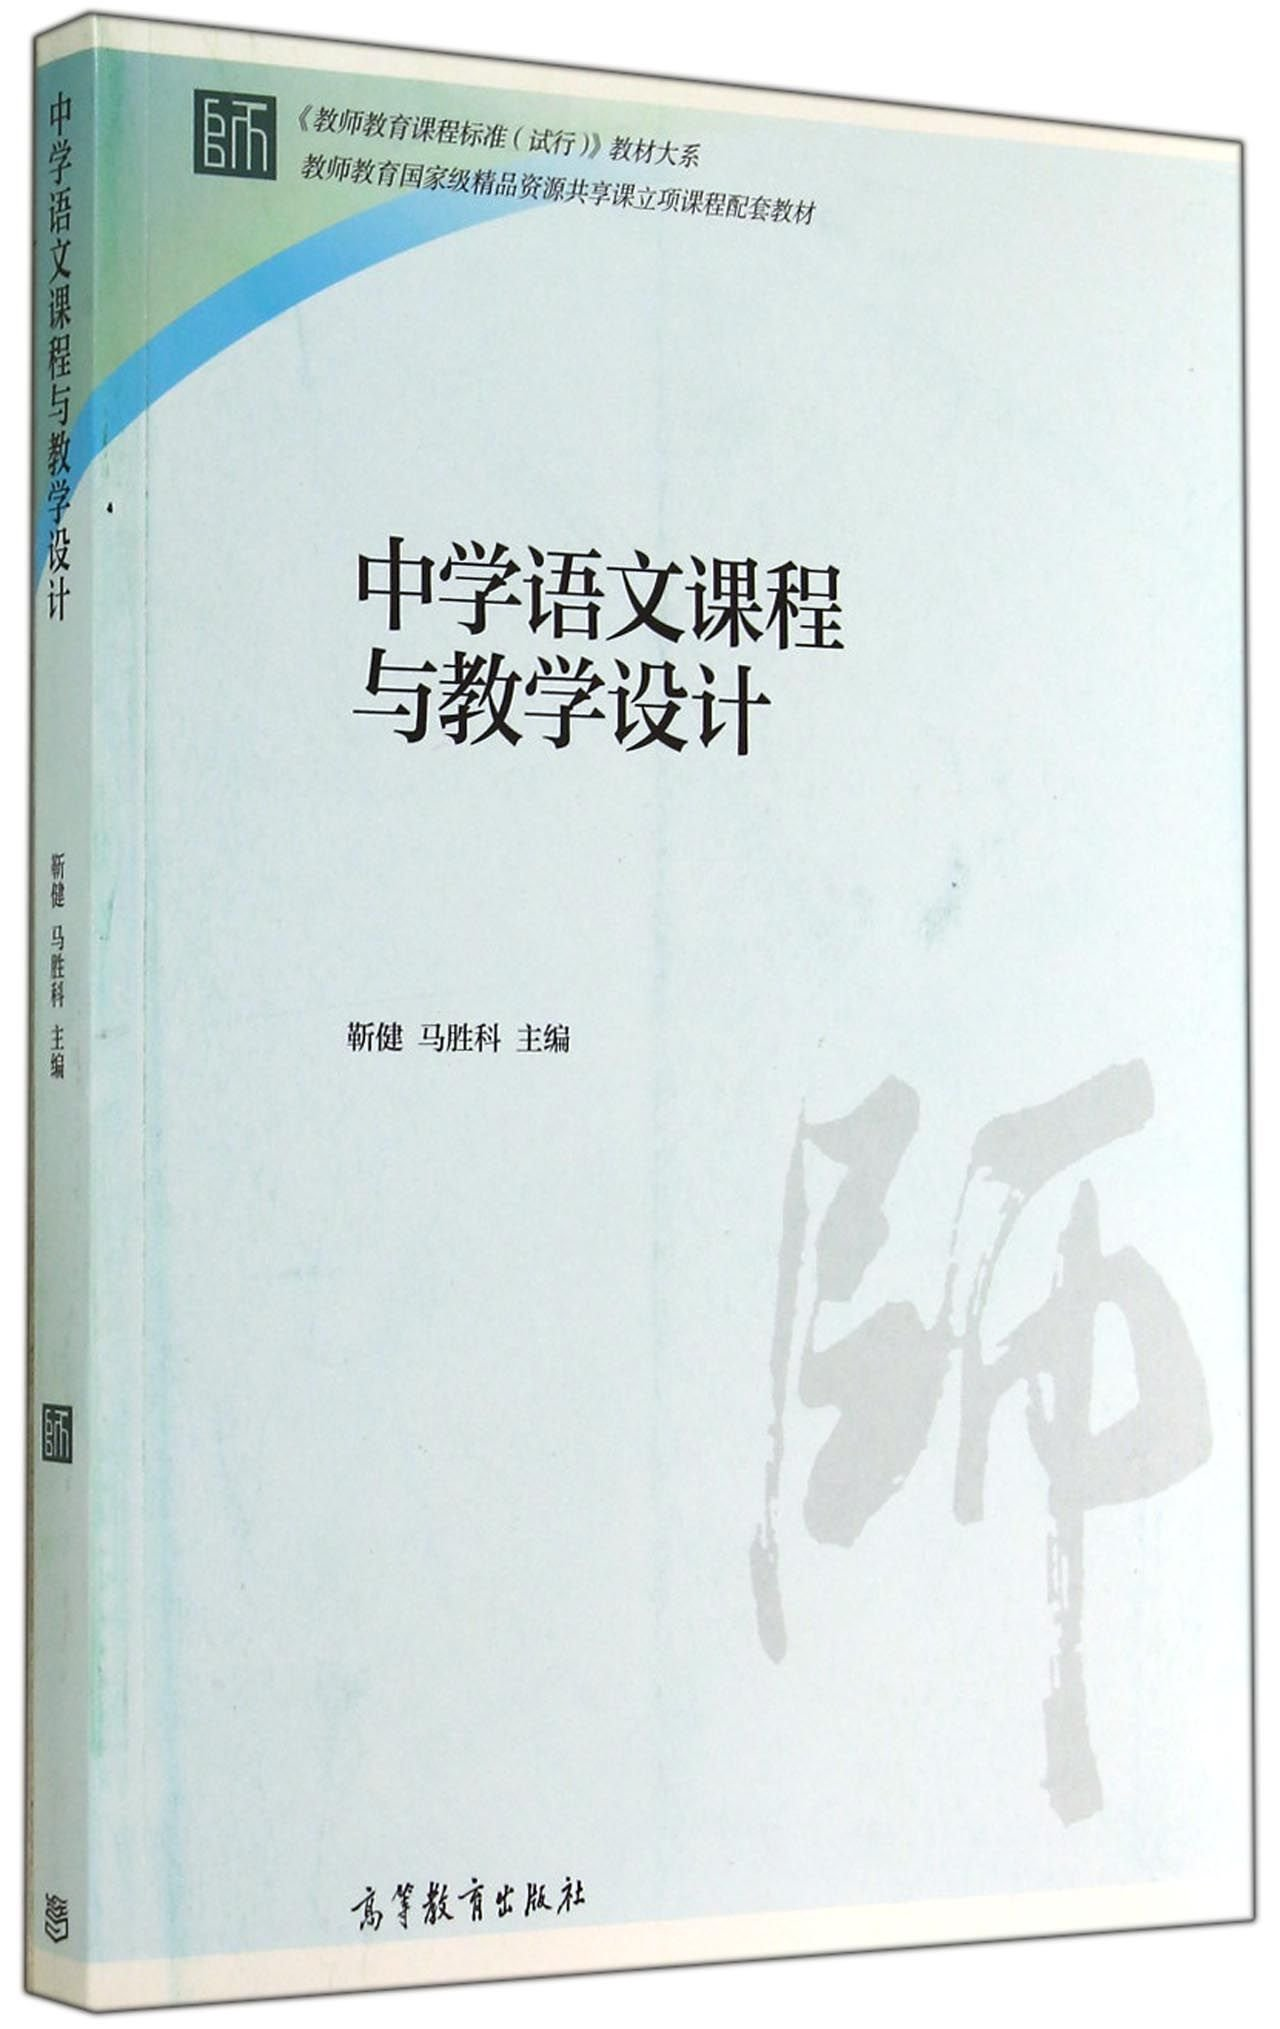 Download Middle School Language Curriculum and Instructional Design Teacher Education Department of Curriculum Standards big trial materials(Chinese Edition) ebook